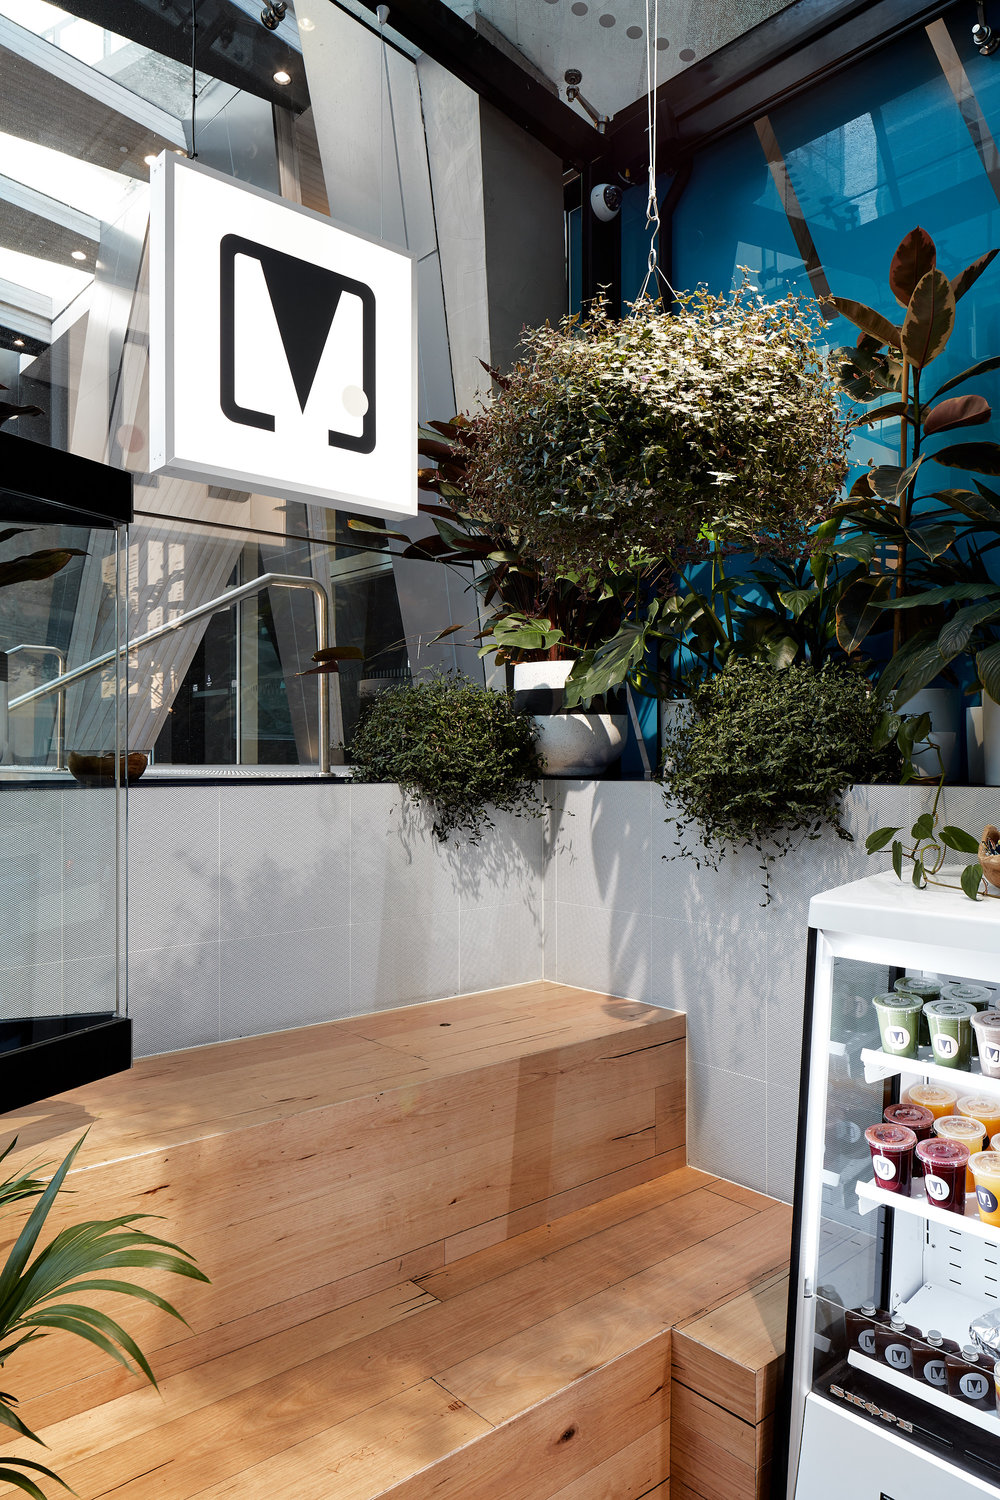 nathan-k-davis-architecture-architectural-photography-interior-design-melbourne-victoria-australia-one-design-office-odo-twig-and-co-v-store-very-vegan-vibes-fitout-3.jpg